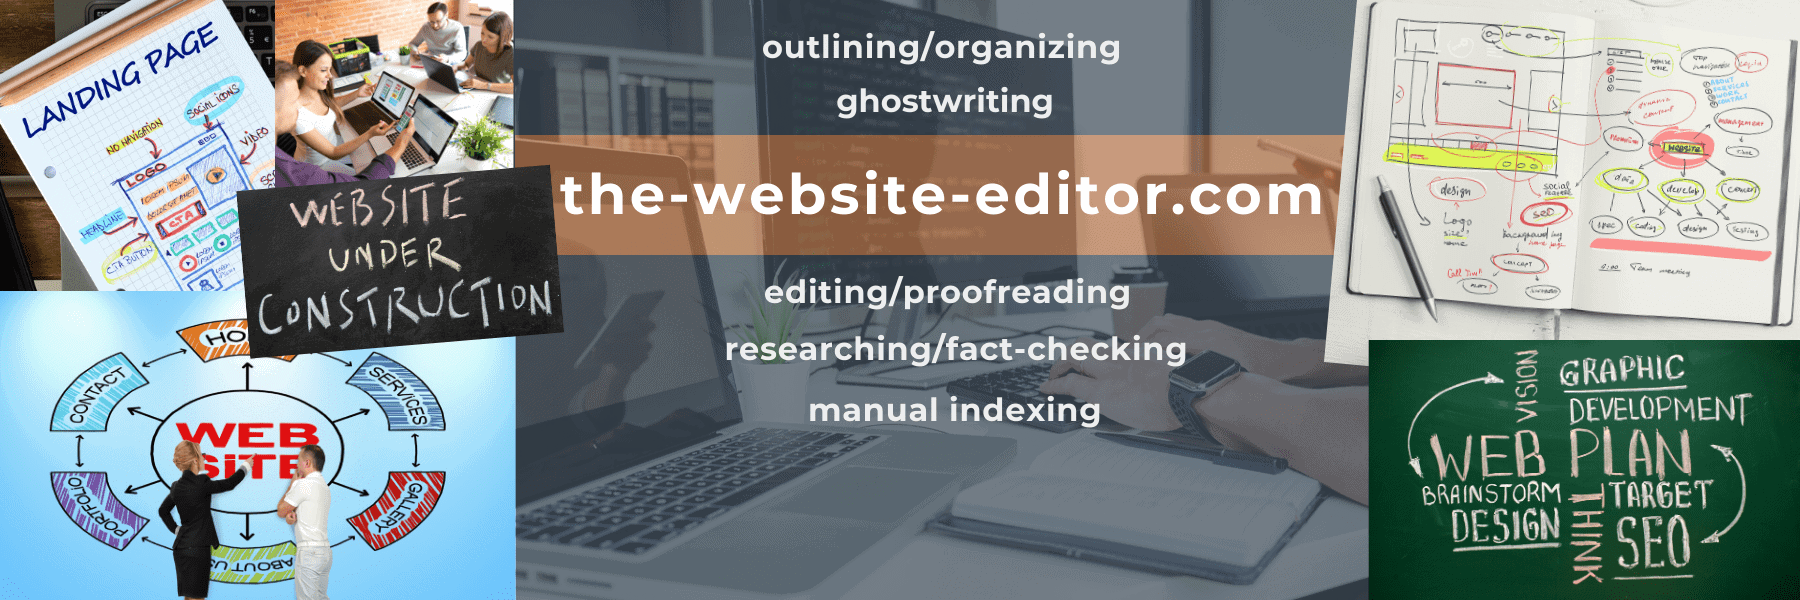 Thank you for visiting the-website-editor, a division of the-freelance-editor, for help with website-related outlining/organizing, ghostwriting, editing/proofreading, researching/fact-checking, and manual indexing.